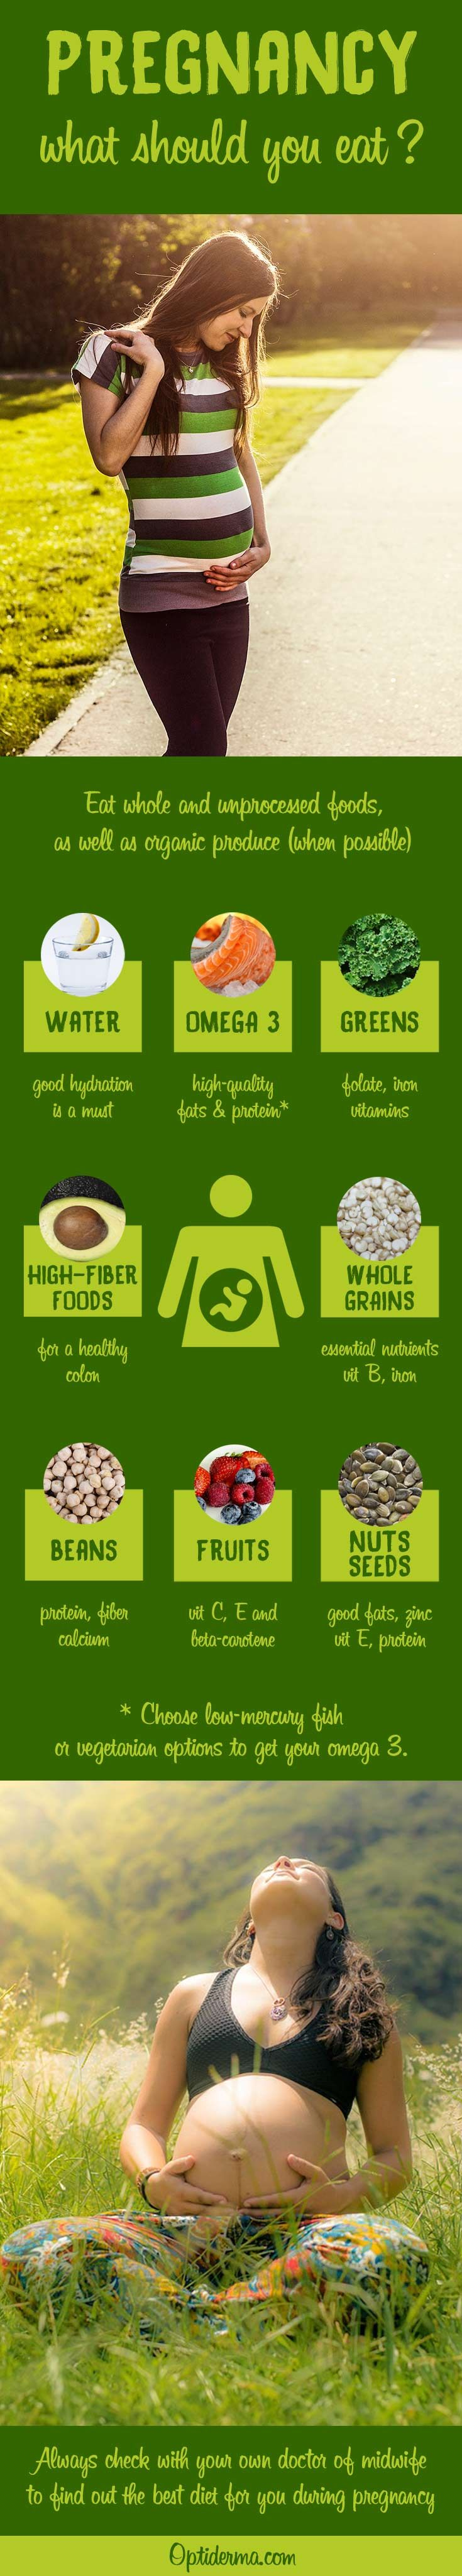 What should you eat while pregnant? Here are top healthy foods to include into your diet. Check this out for more diet tips:  http://www.optiderma.com/articles/5-tips-healthy-pregnancy-diet/